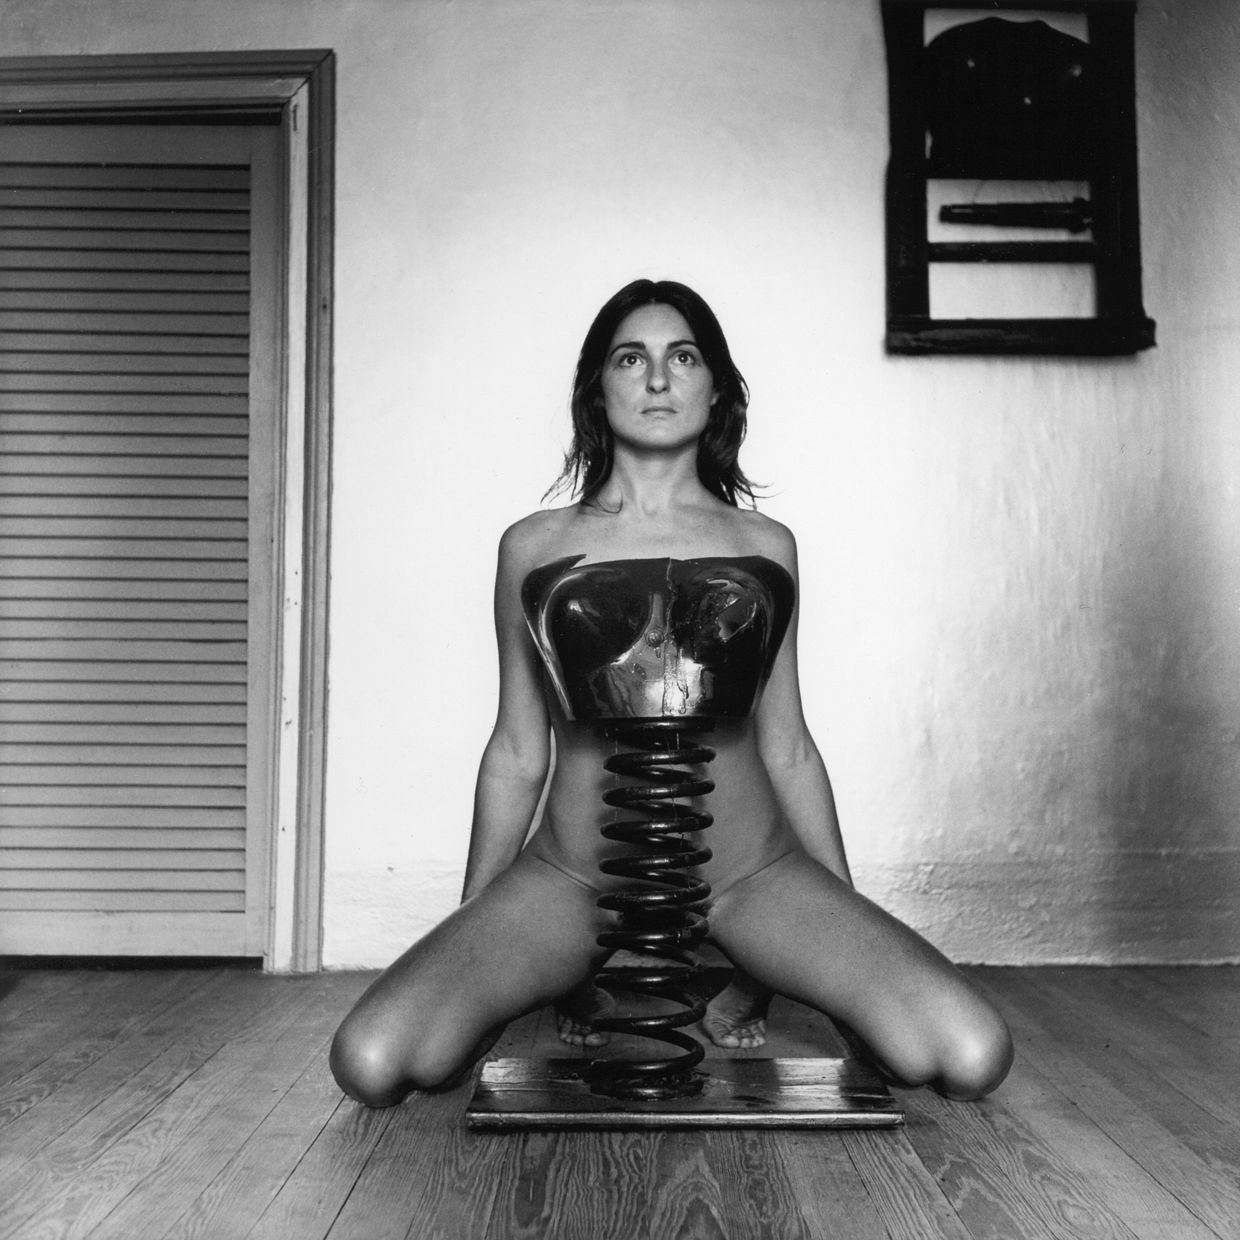 RETHINK EVERYTHING: THE POWER OF ART IN TIMES OF ISOLATION - Liliana Maresca, Untitled. Liliana Maresca and her artworks, 1983